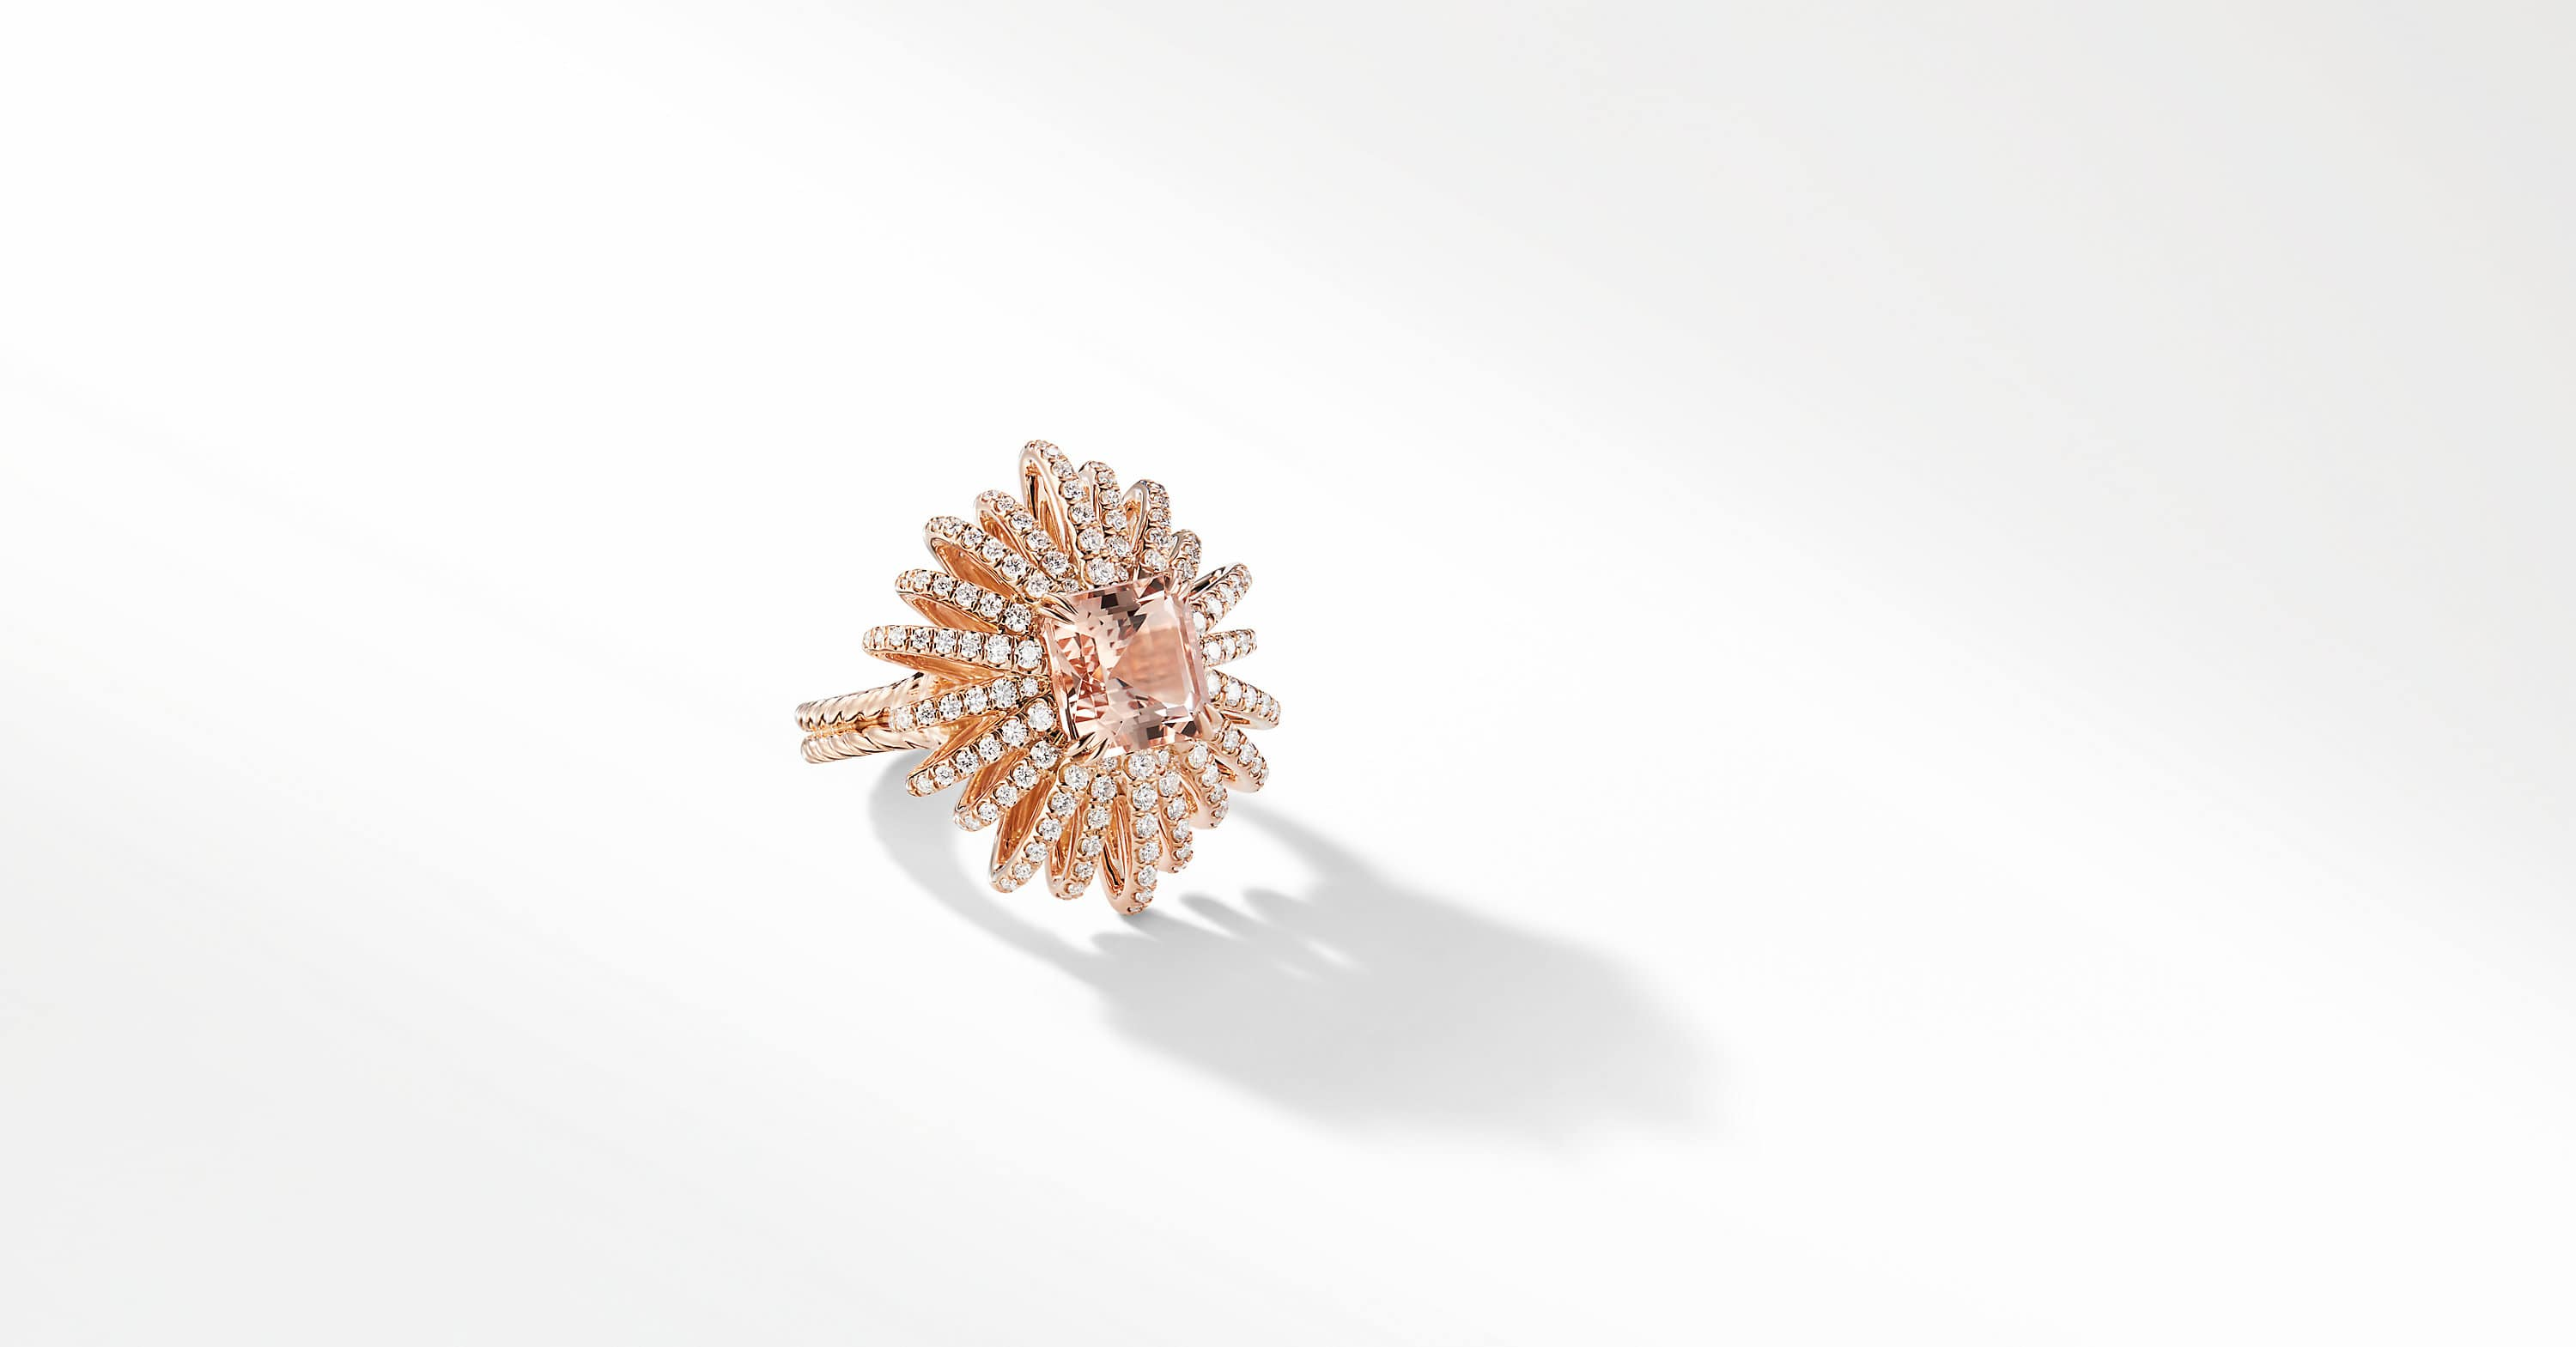 Starburst Ring with Diamonds in 18K Rose Gold, 25mm